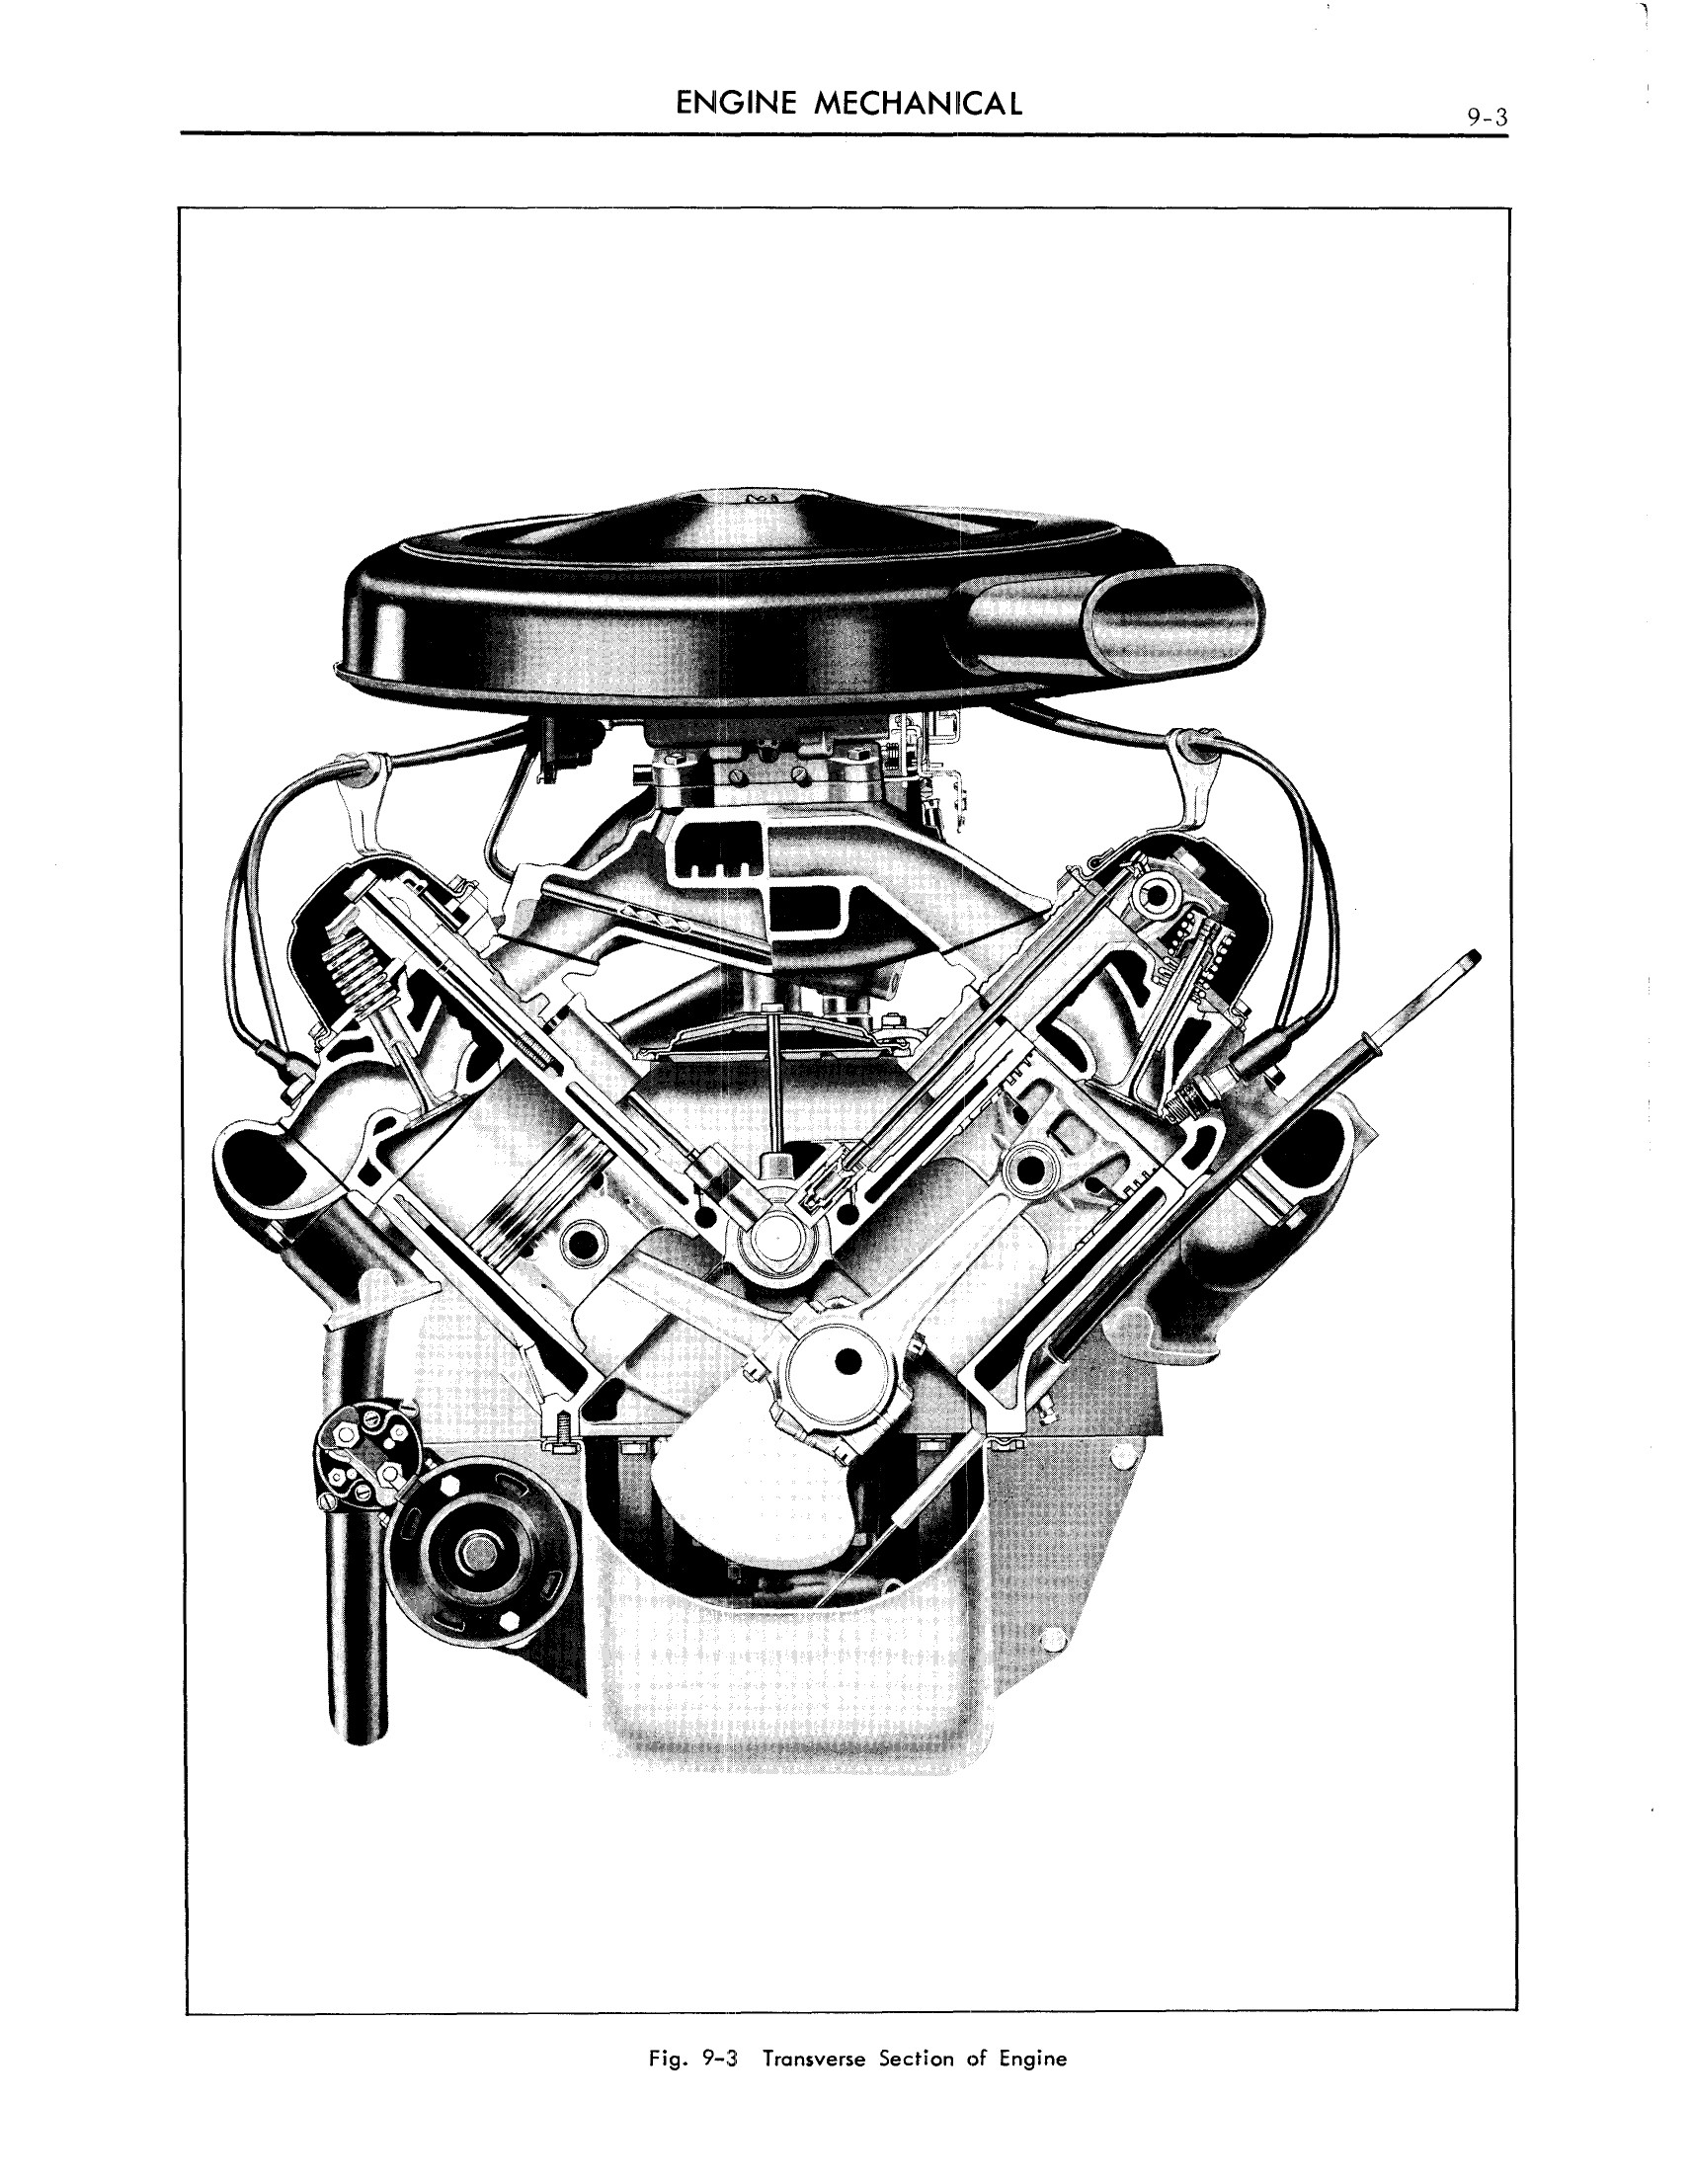 1959 Cadillac Shop Manual- Engine Mechanical Page 3 of 34